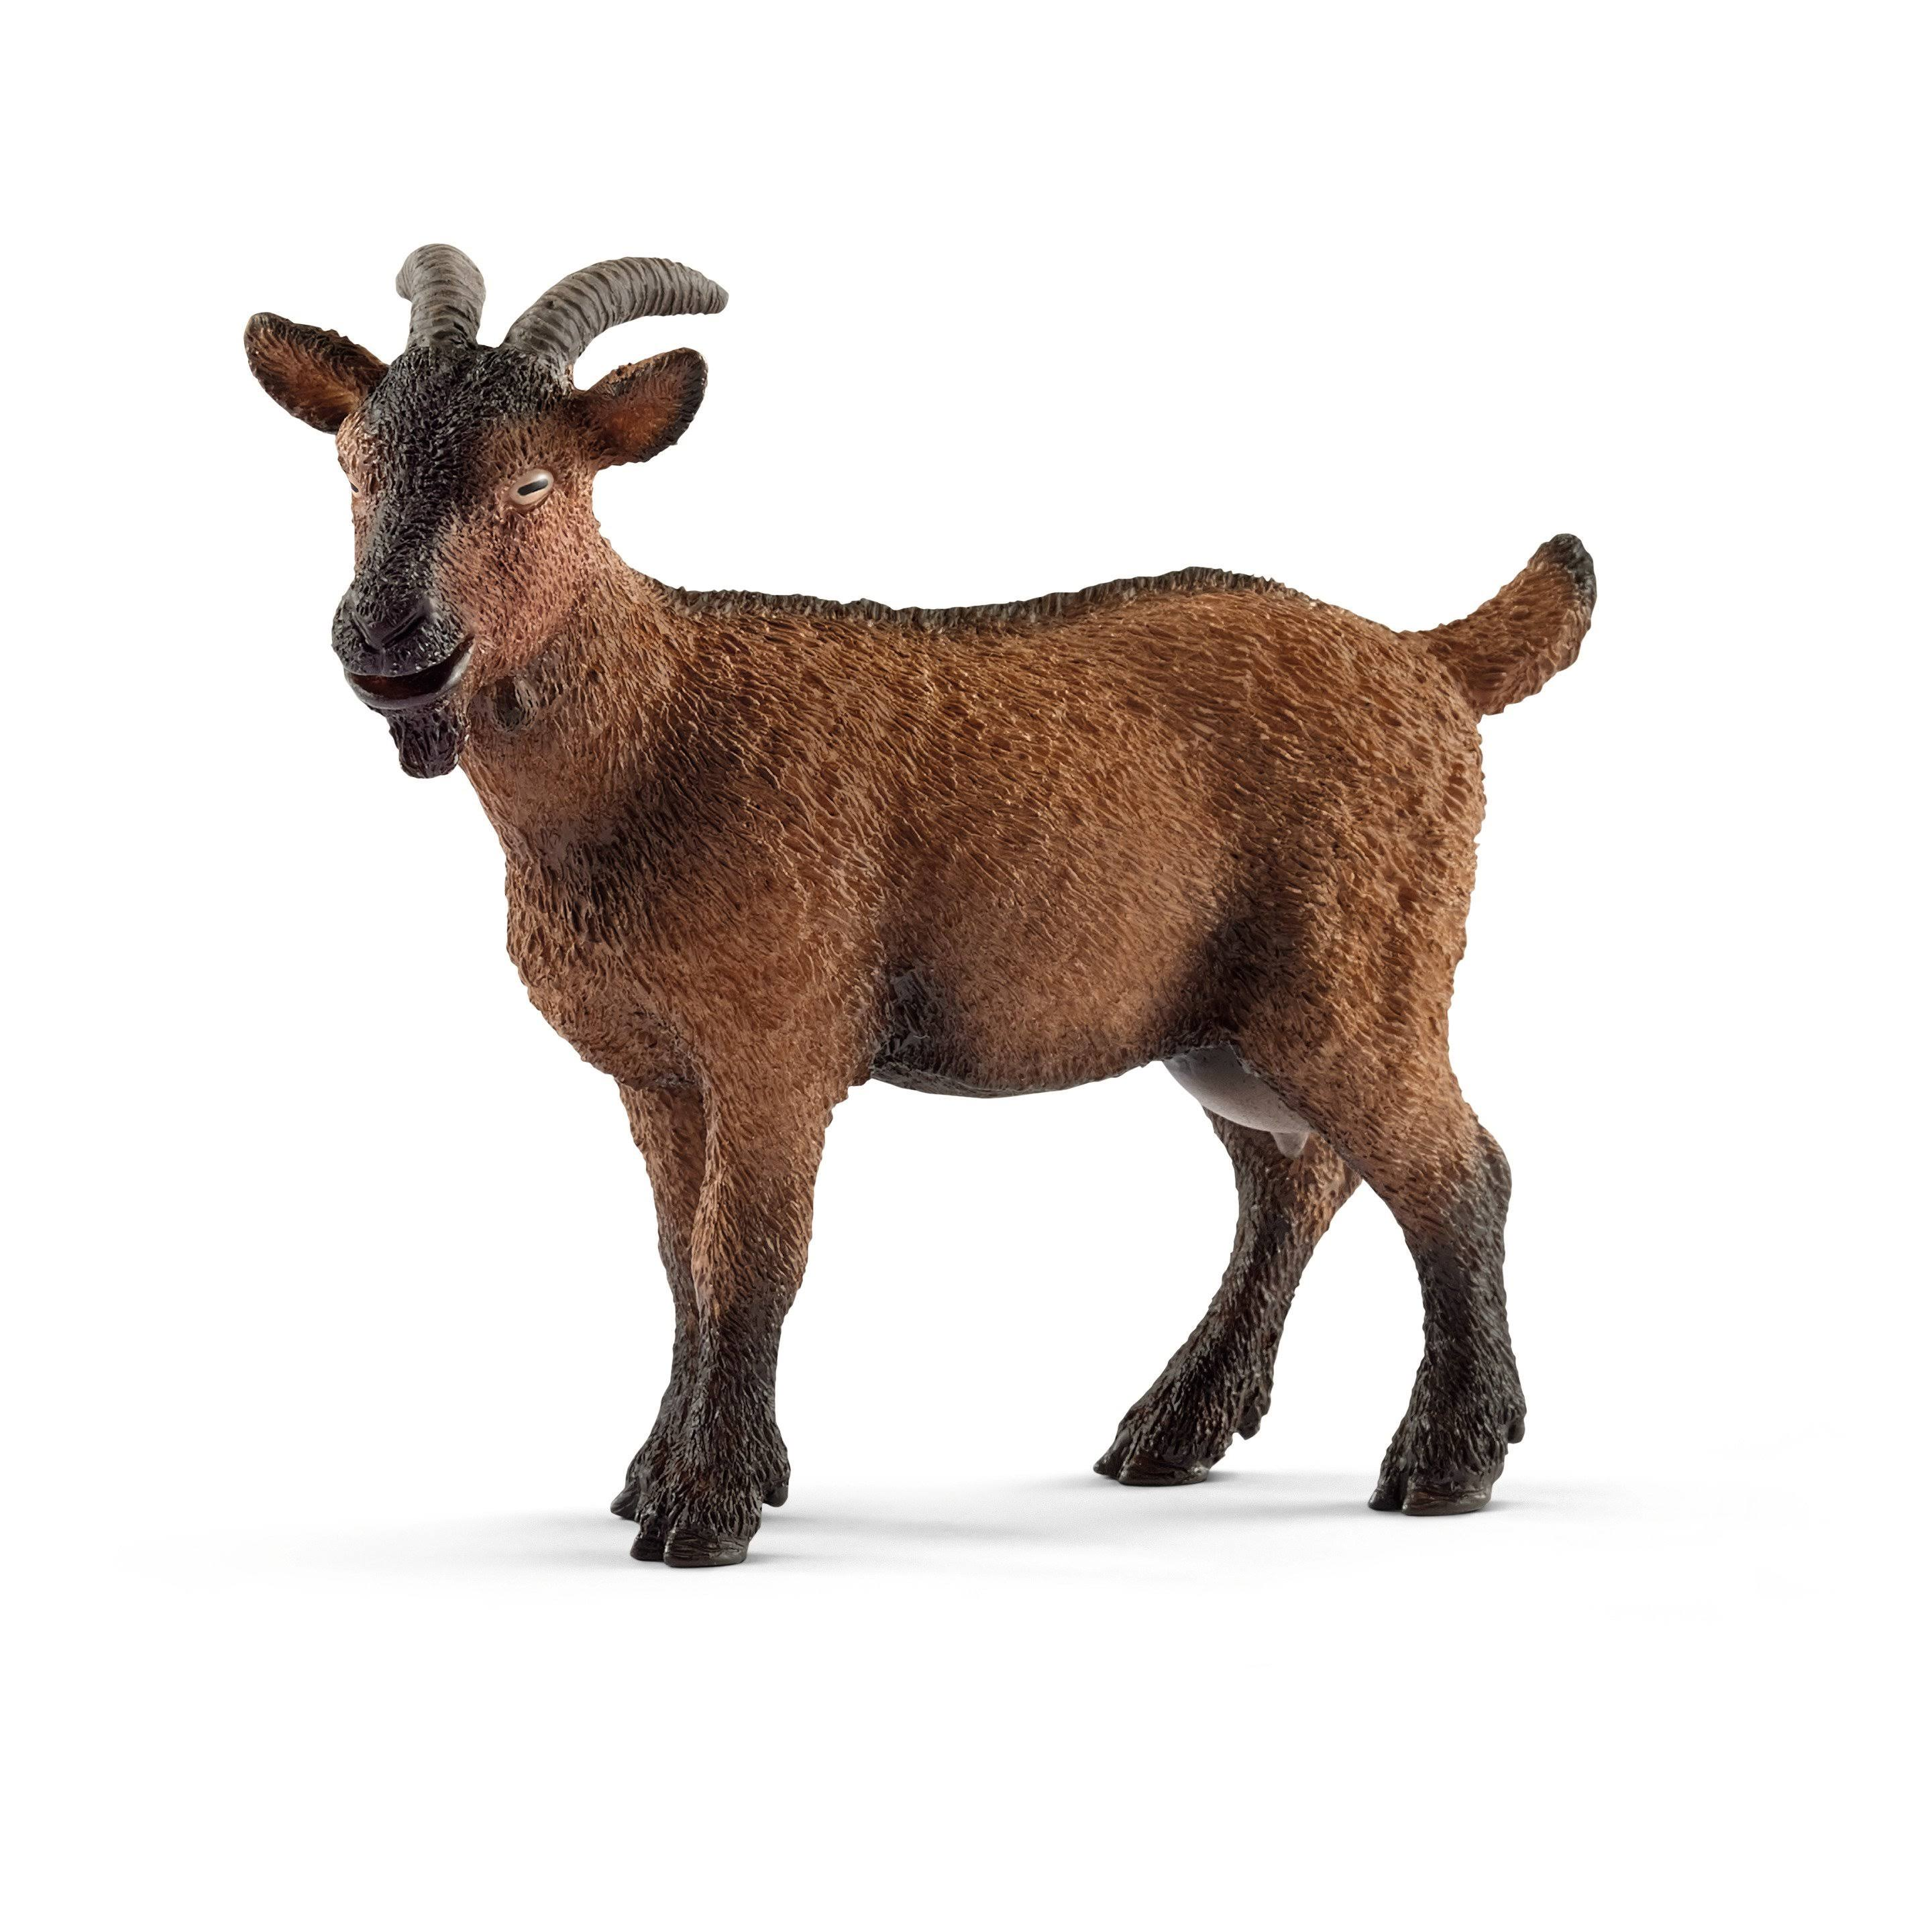 Schleich World of Nature Farm Life Plastic Figure - Goat